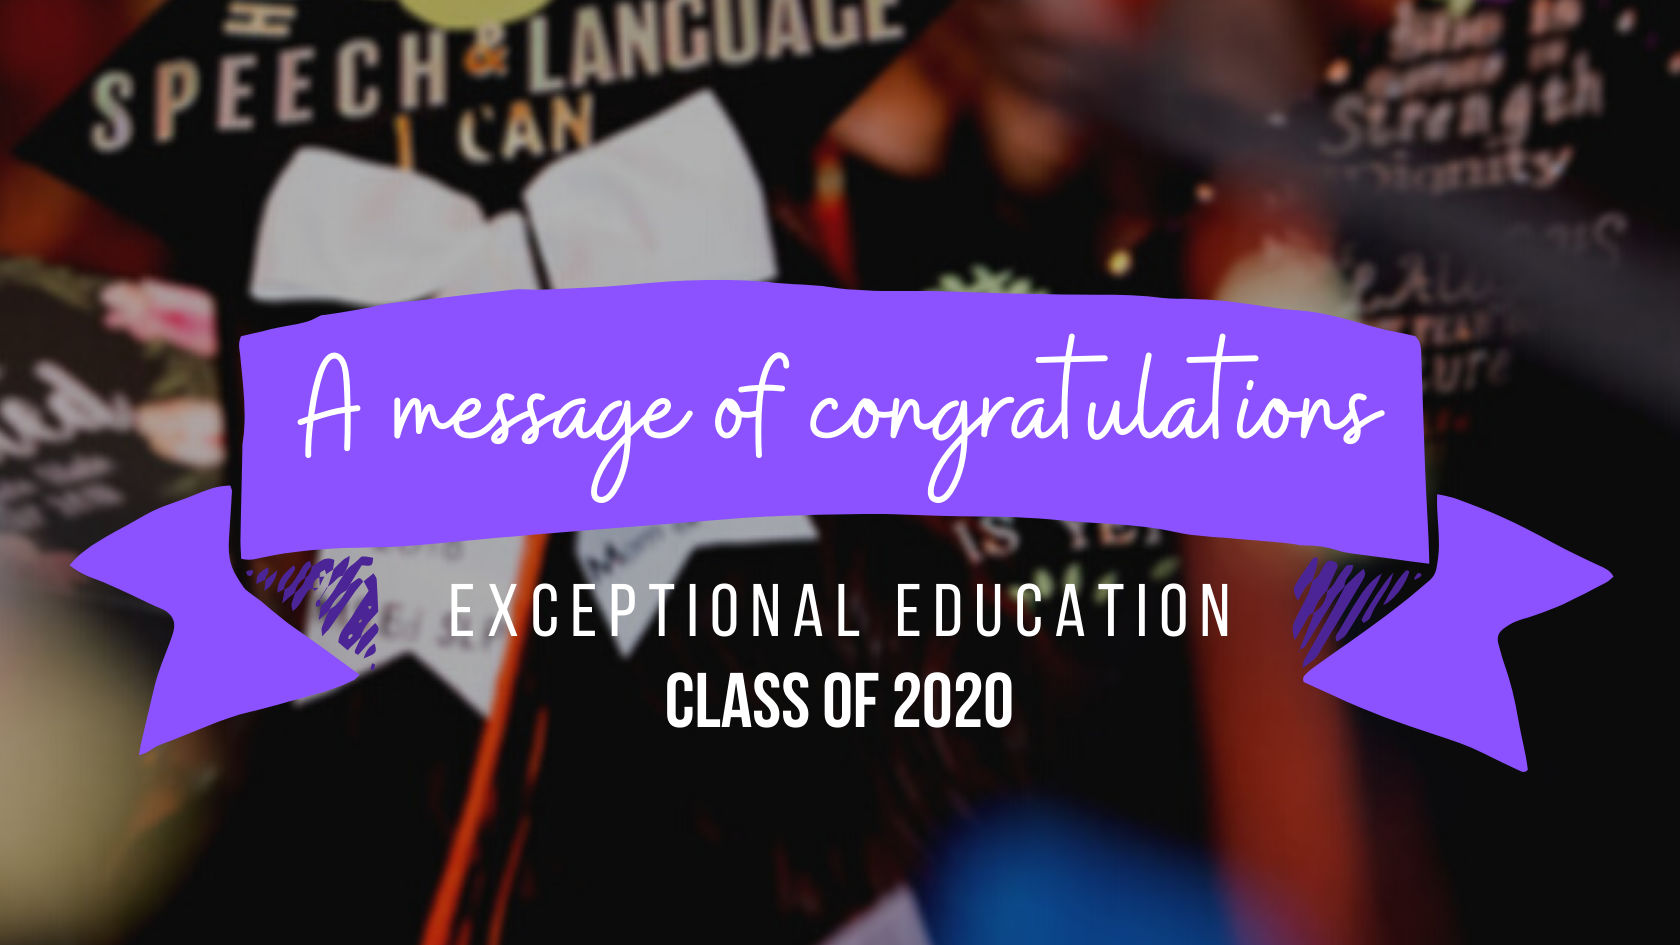 a message of congratulations from exceptional education class of 2020